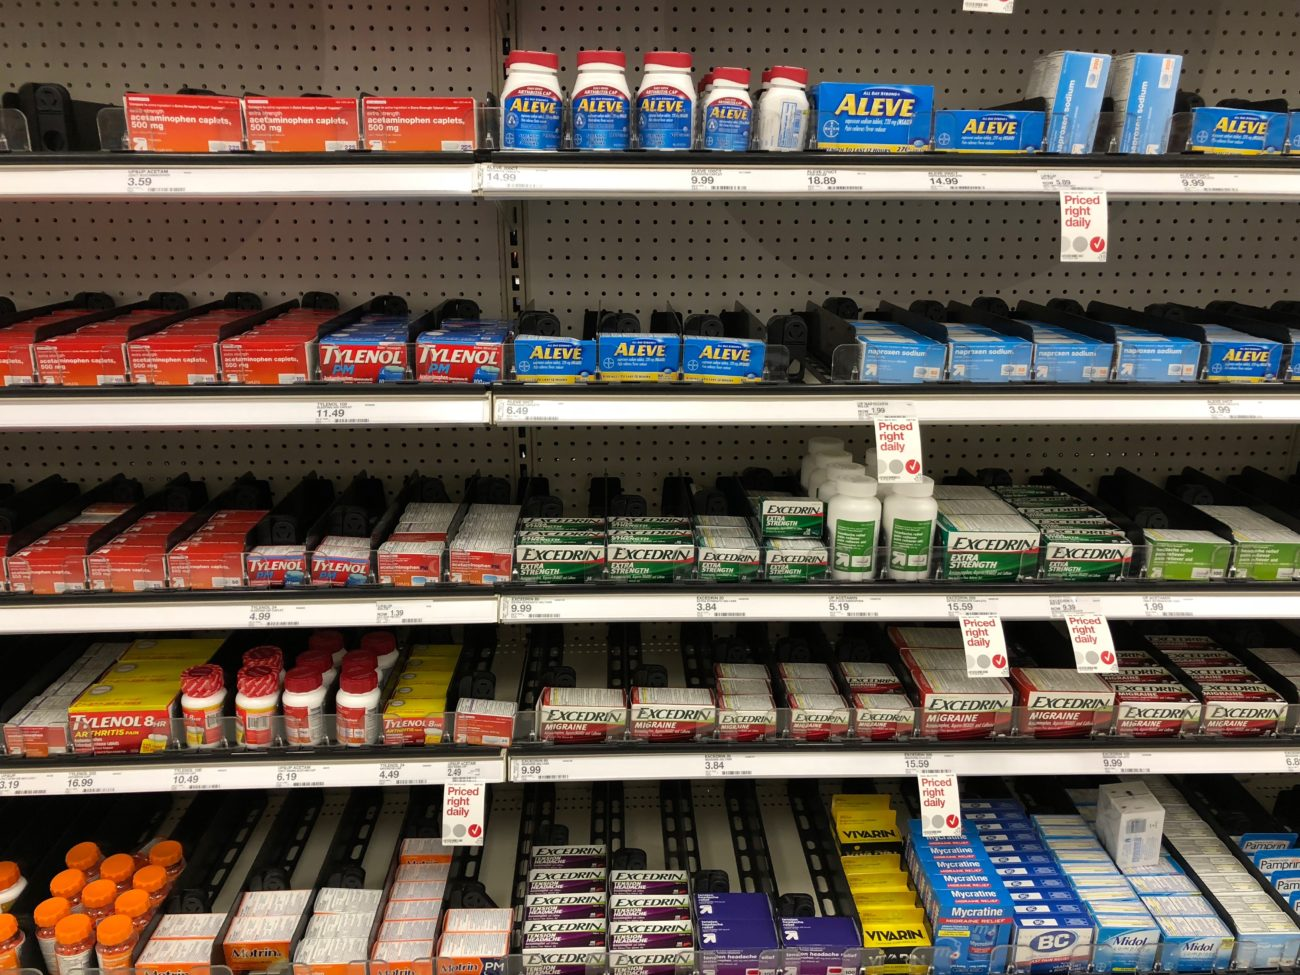 Confessions of a Charlotte pharmacist